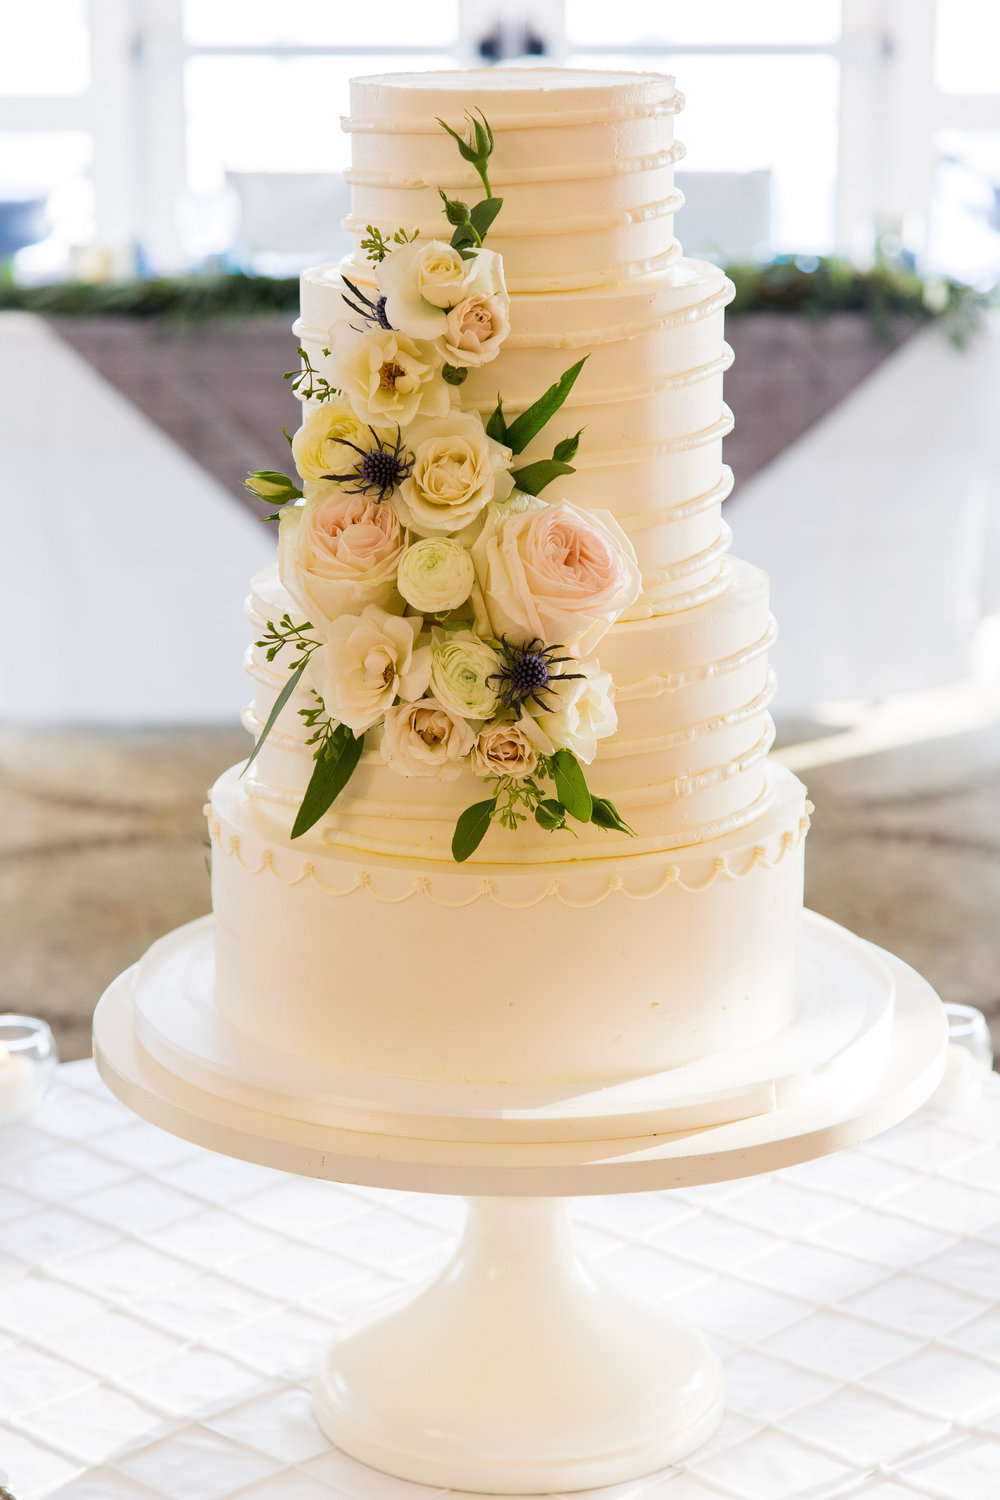 Gallery: Buttercream Wedding — Sweet Fix